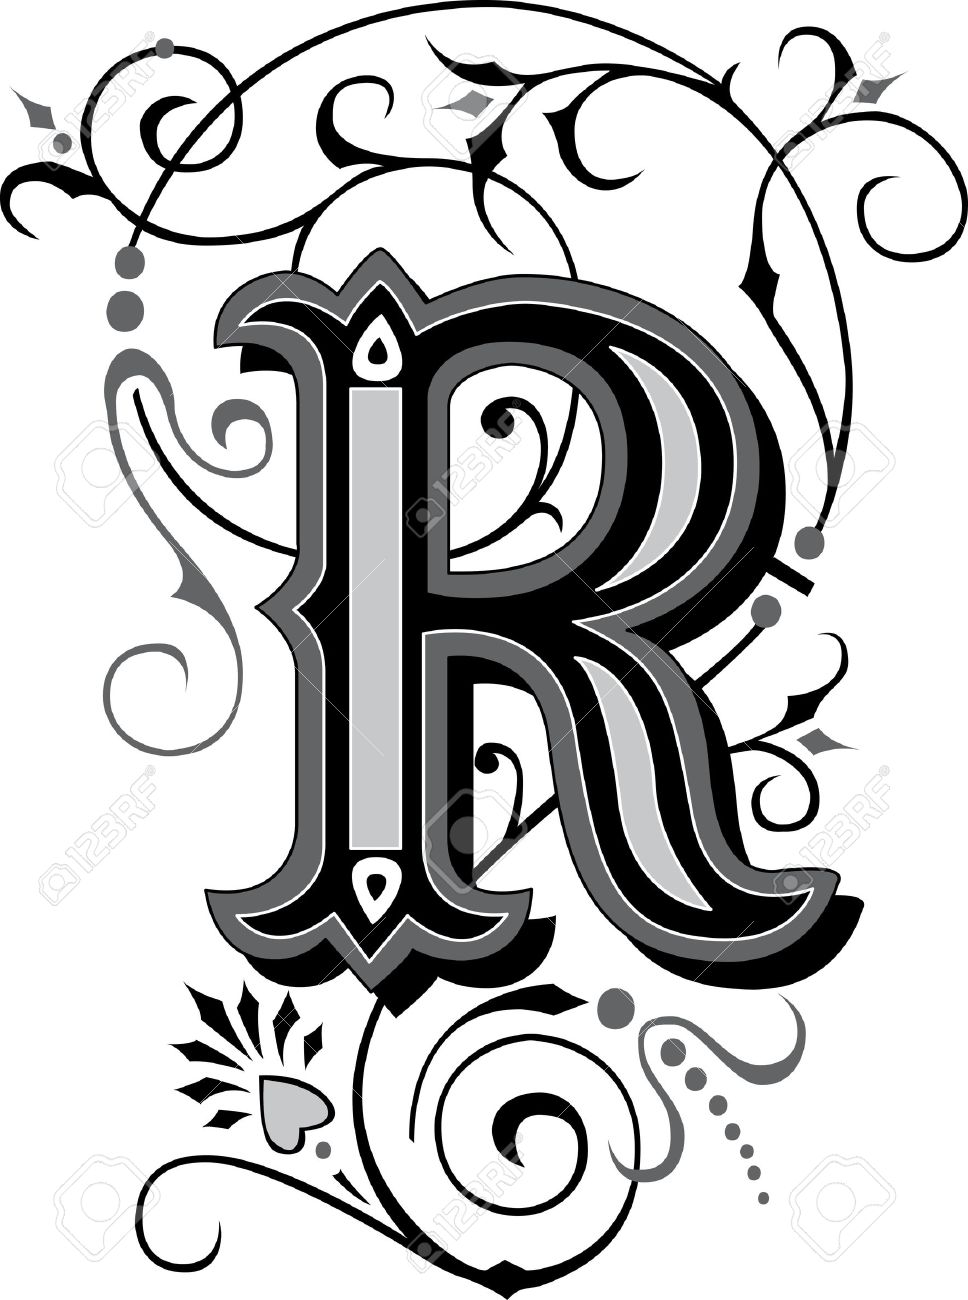 Beautifully Decorated English Alphabets Letter R Royalty Free